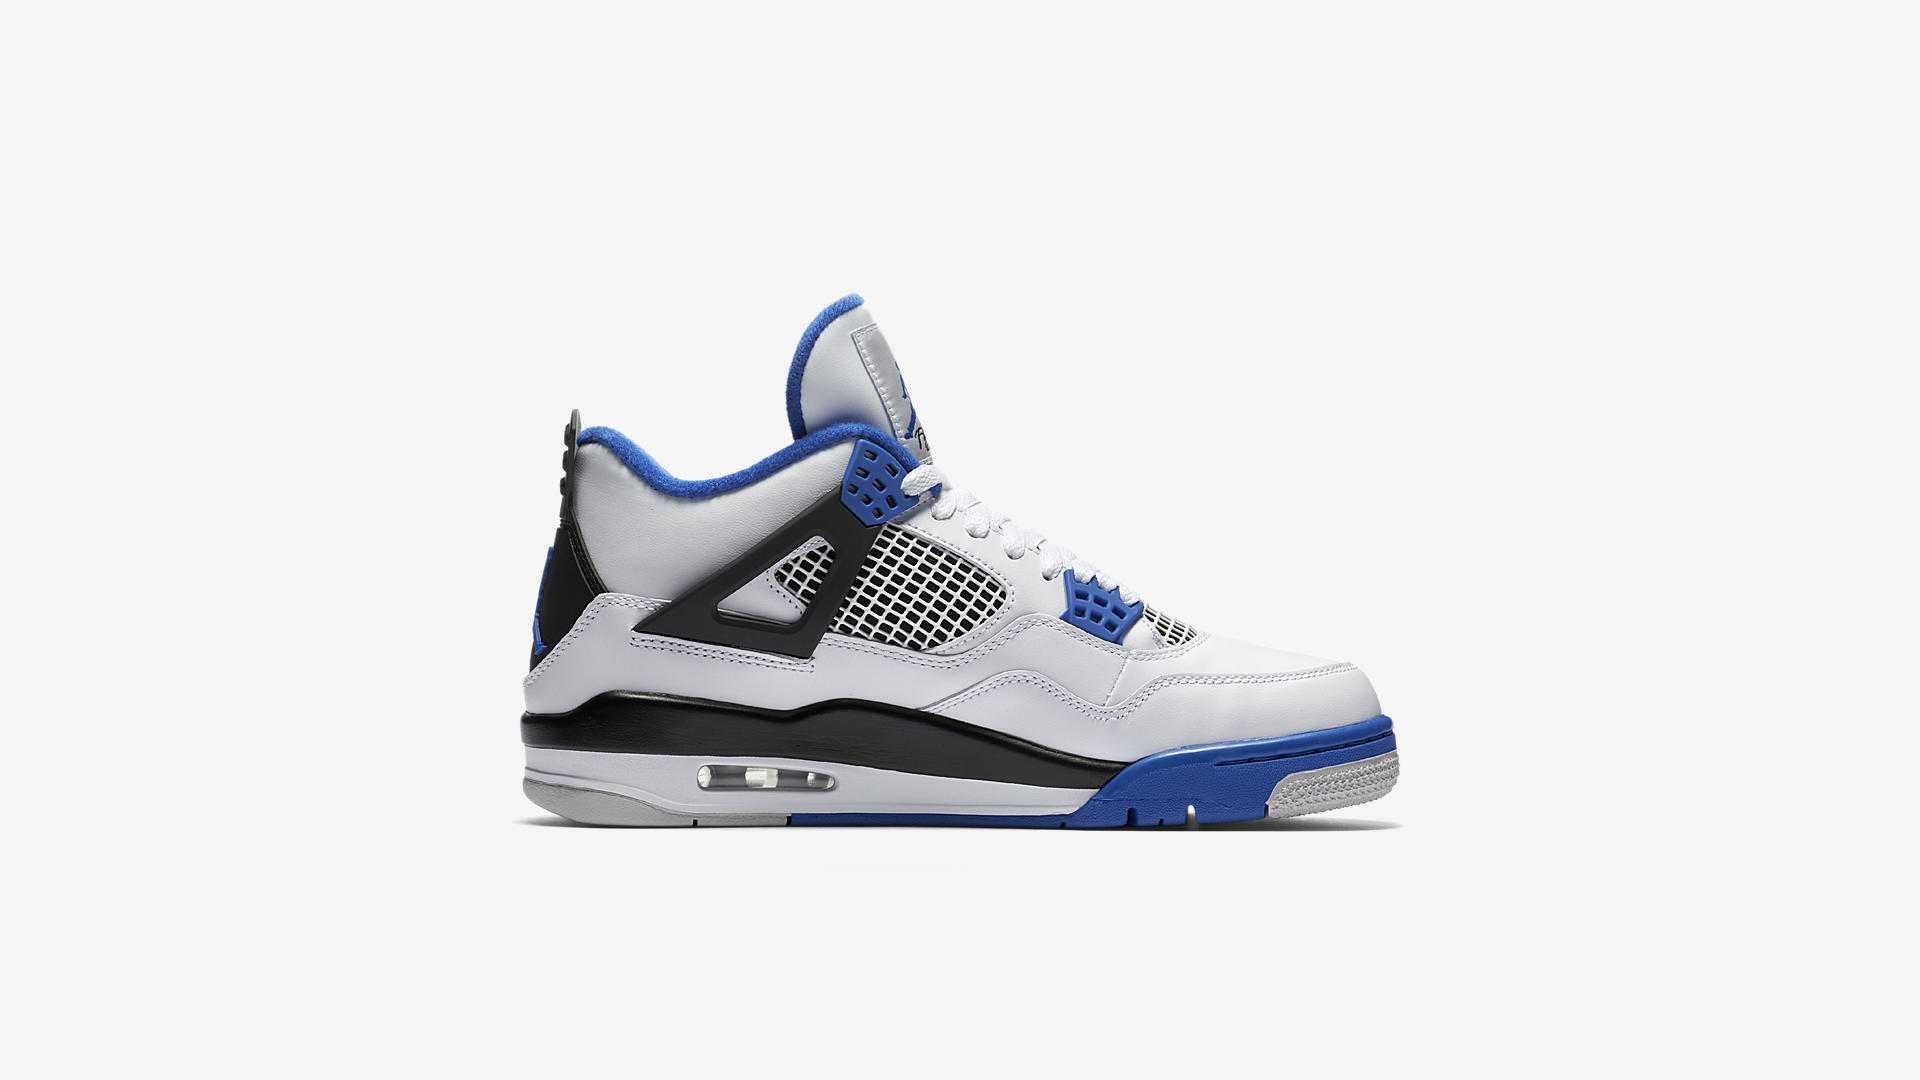 Air Jordan 4 Retro Motorsport 308497 117 2